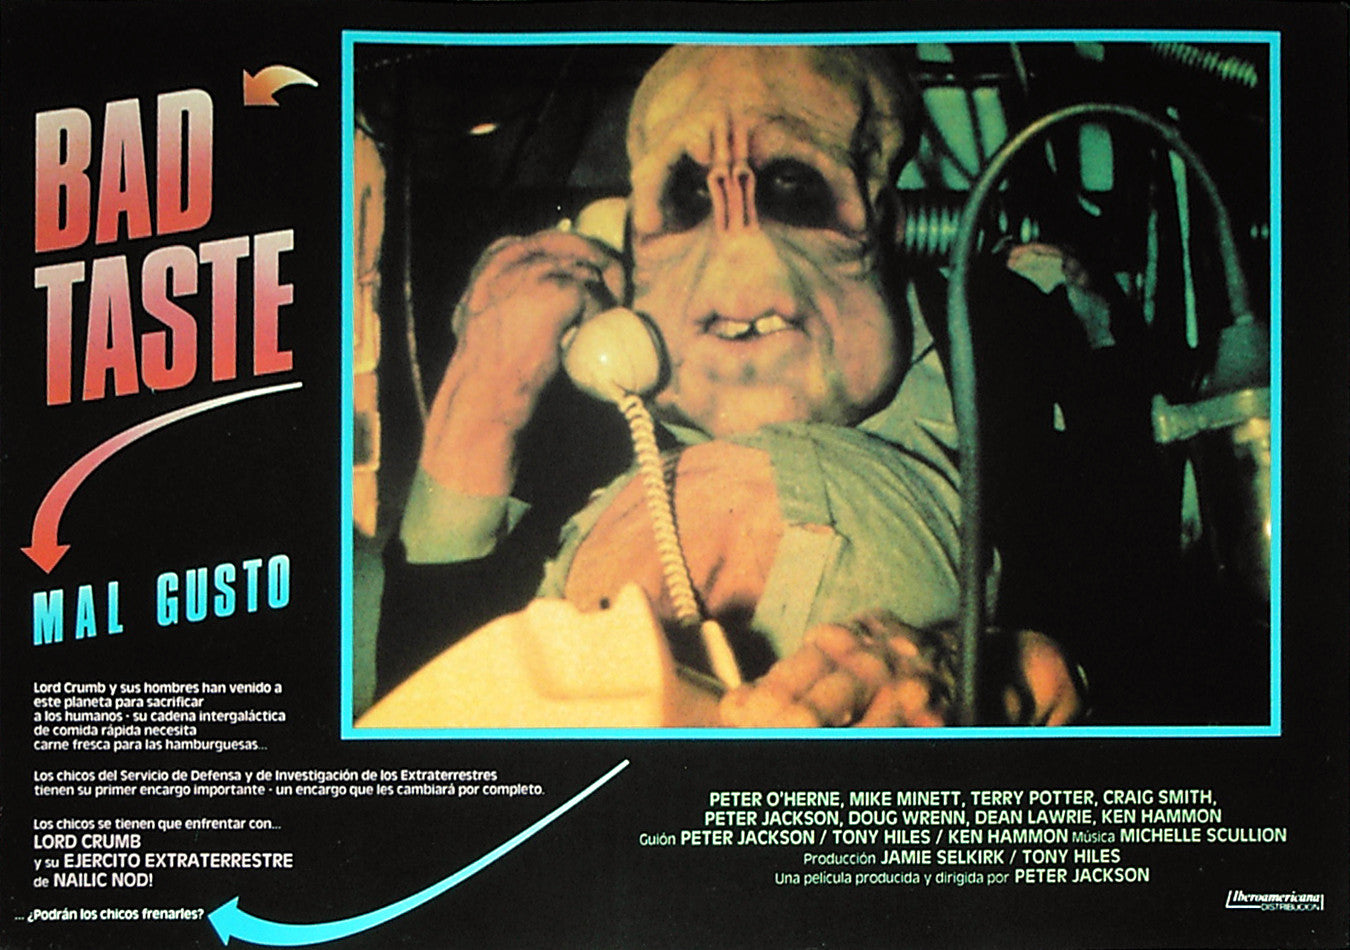 BAD TASTE - Spanish lobby card v3